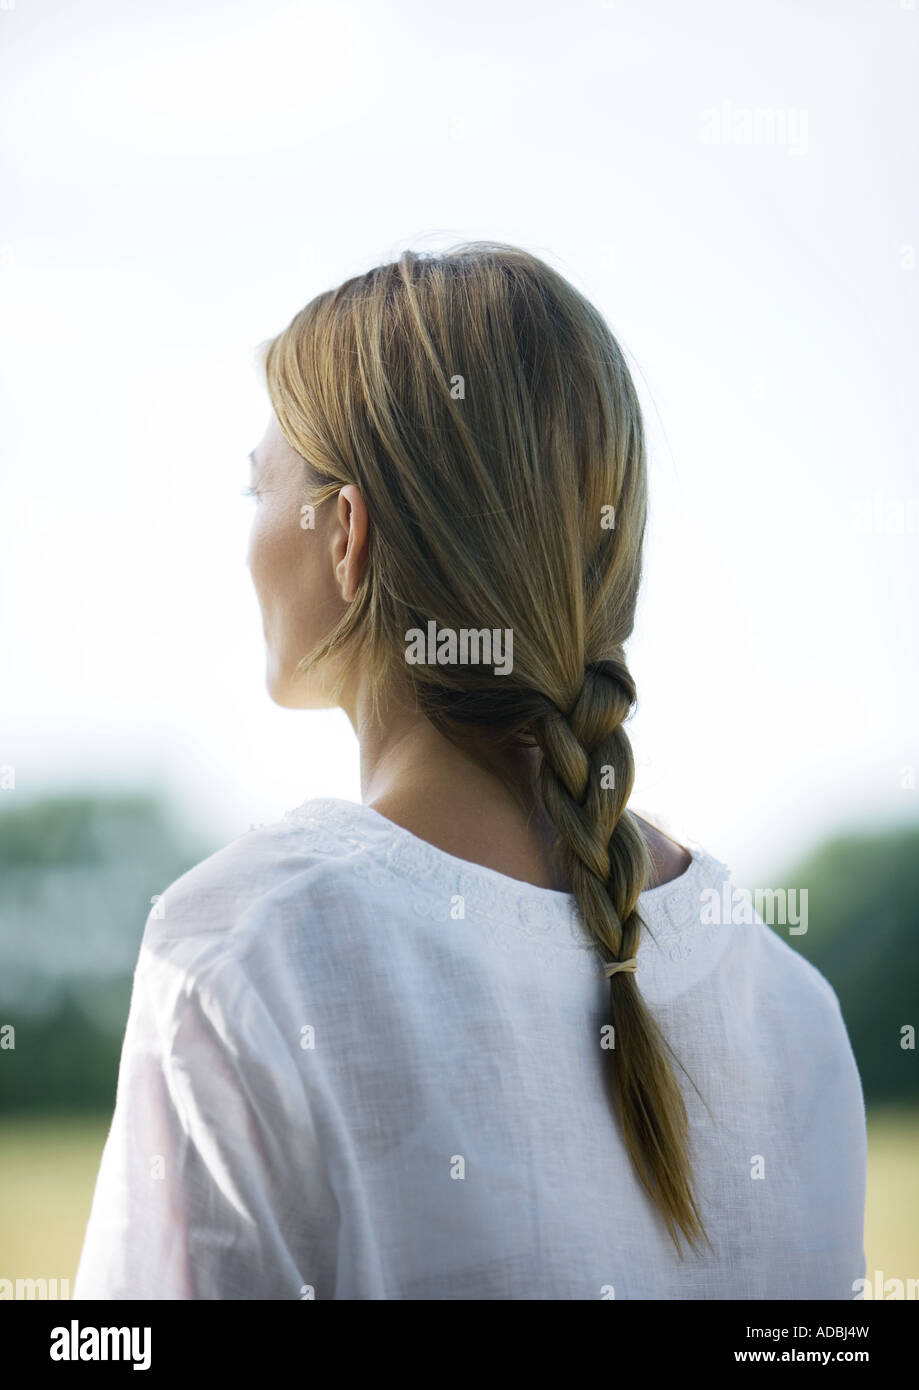 Woman outdoors, hair braided, rear view - Stock Image